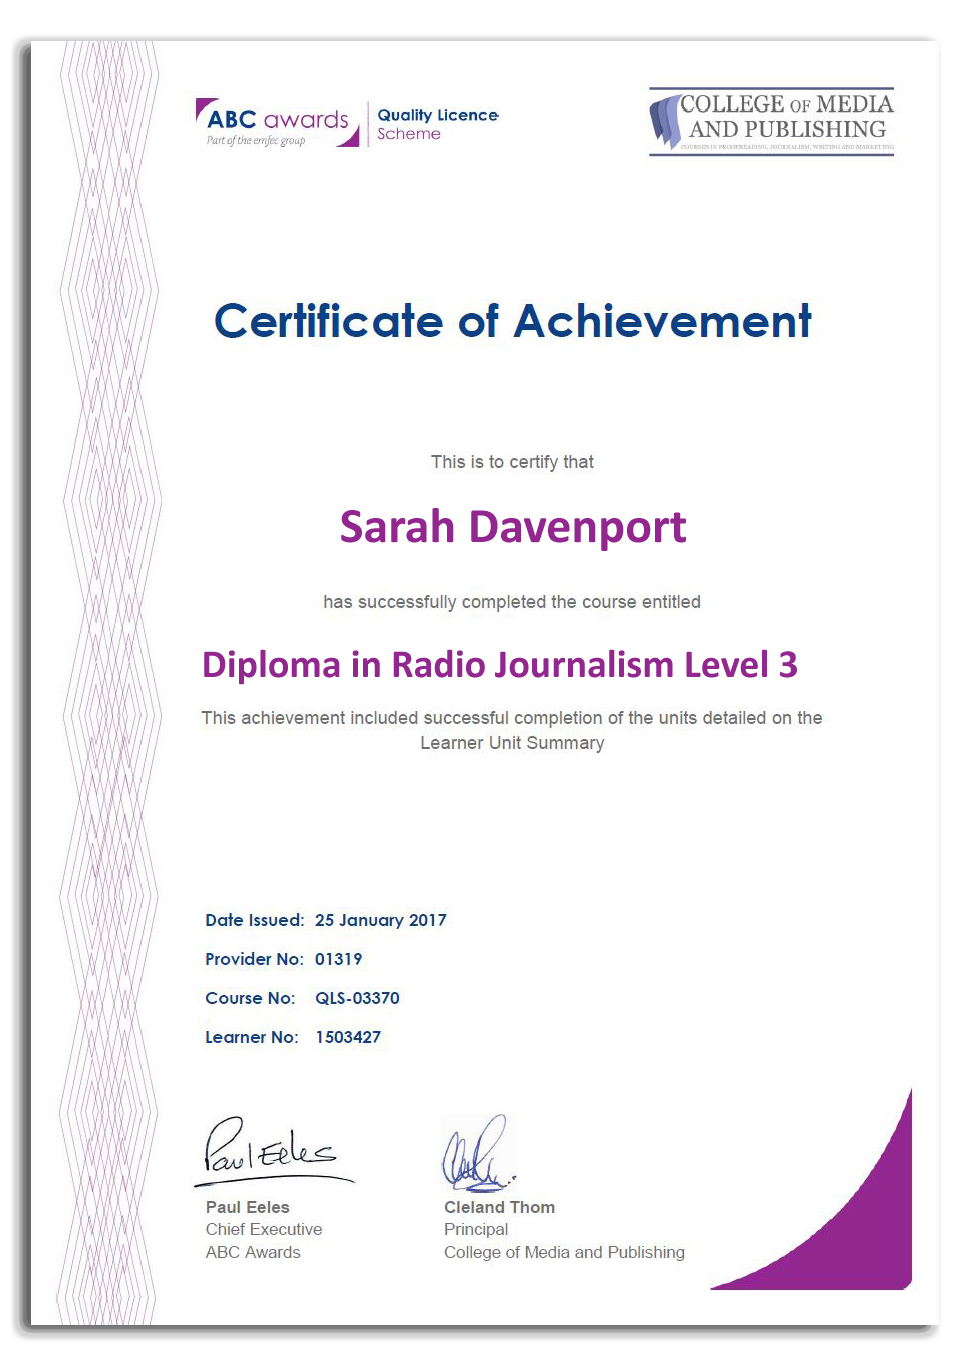 Radio journalism course certificate